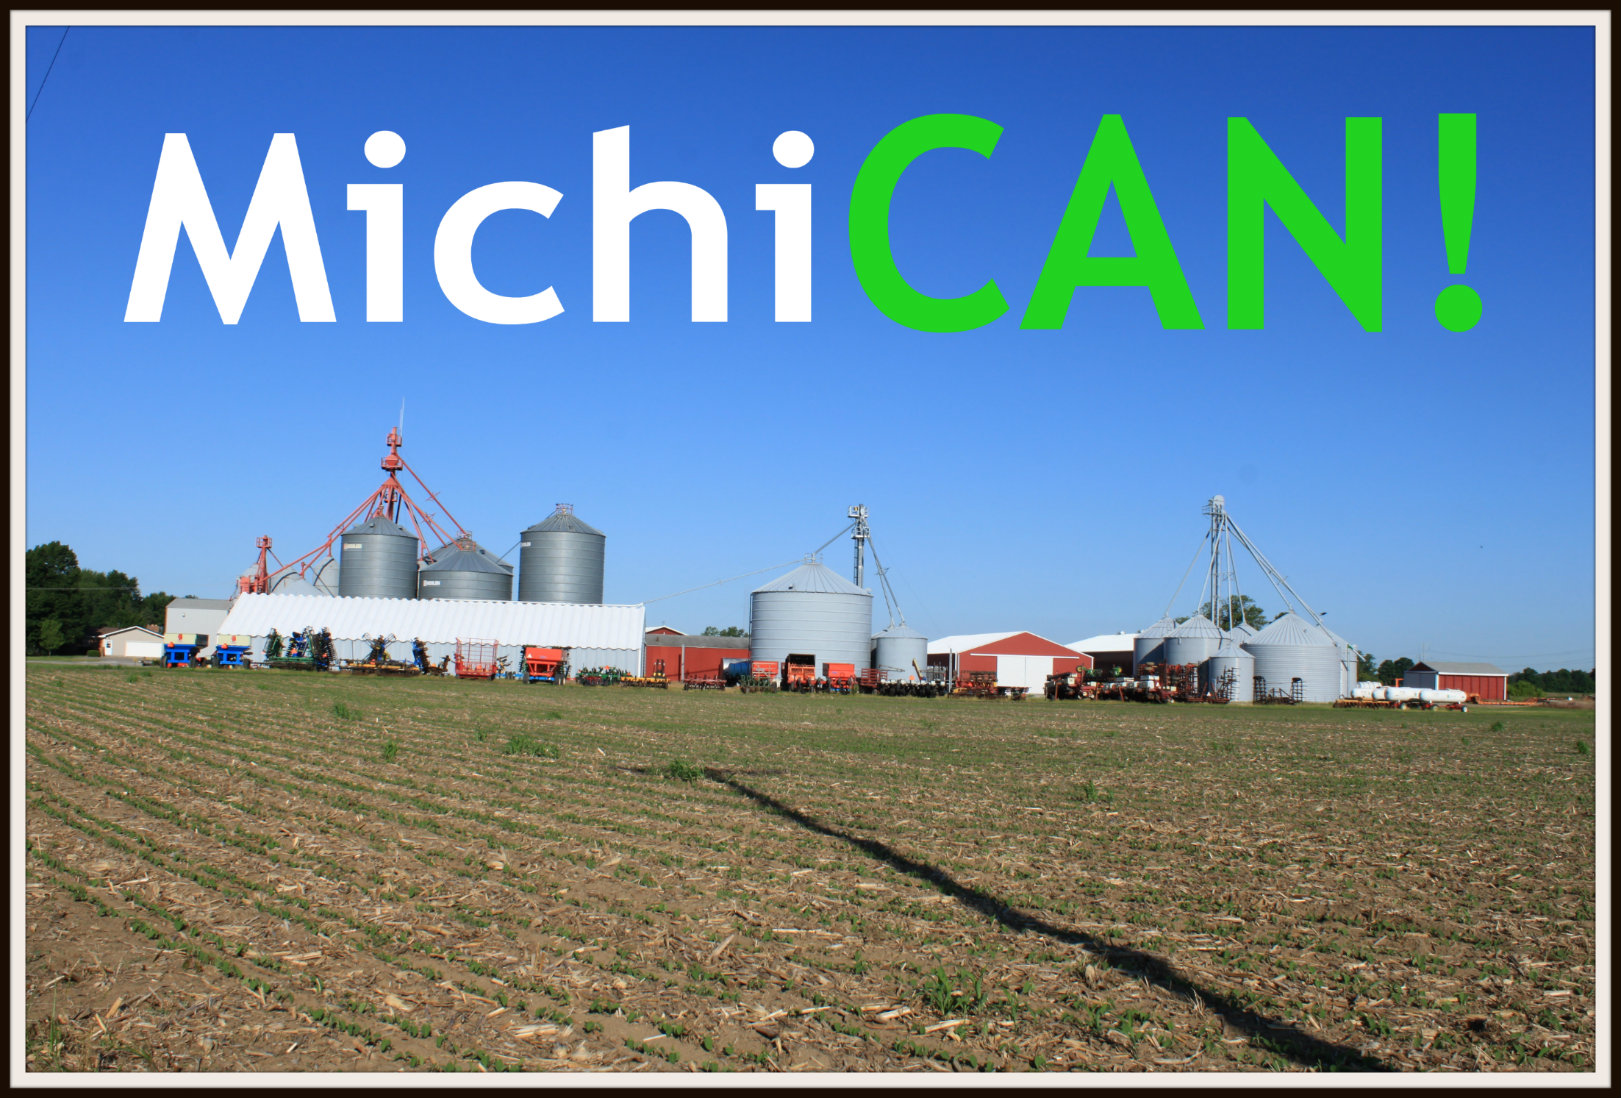 Michigan-MichiCAN if they grow hemp